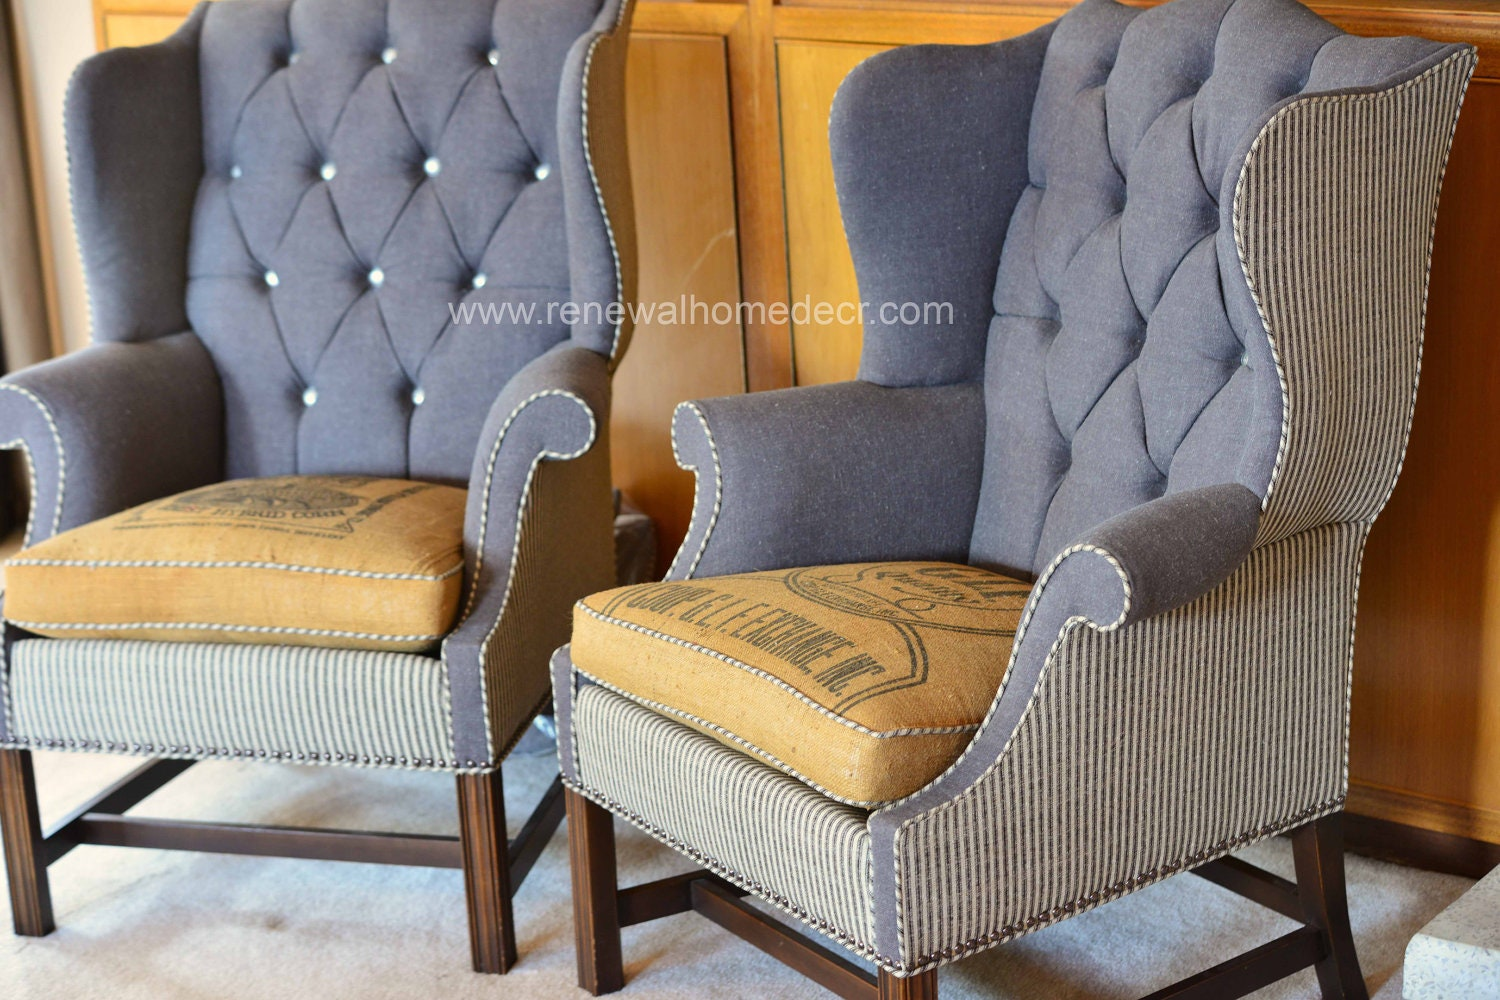 Custom Order Vintage Upholstered Wing back Chair